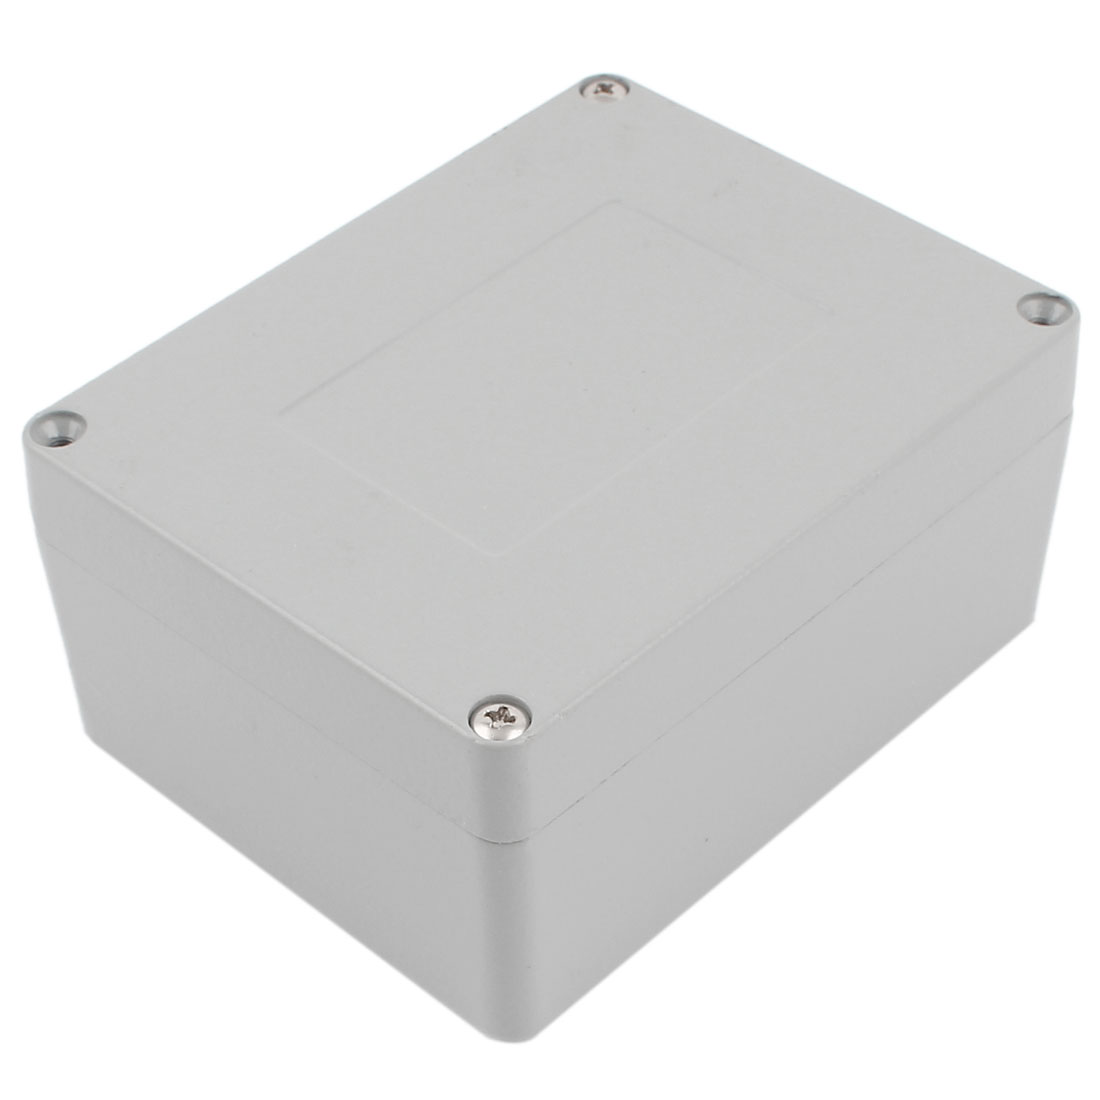 115mm x 90mm x 60mm Waterproof Aluminium Alloy Sealed Electrical Junction Box